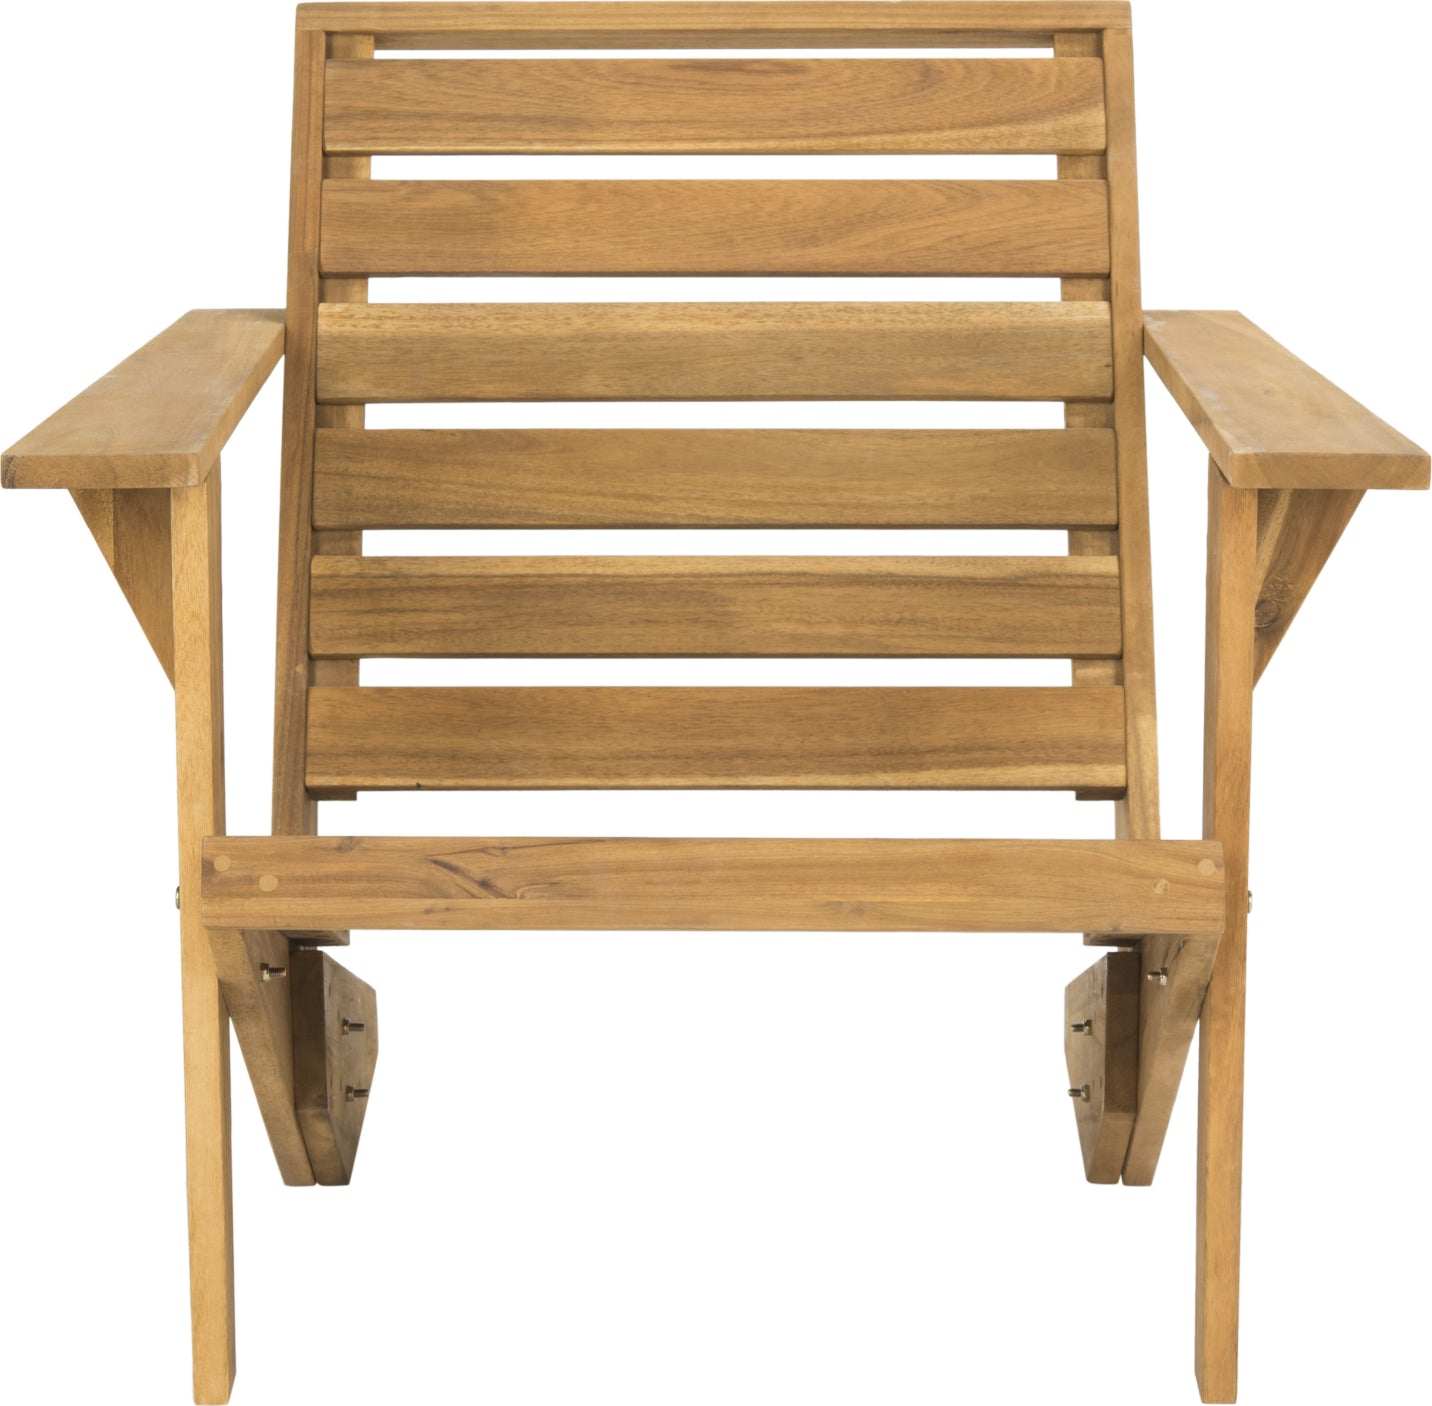 Safavieh Lanty Adirondack Chair Teak Furniture main image